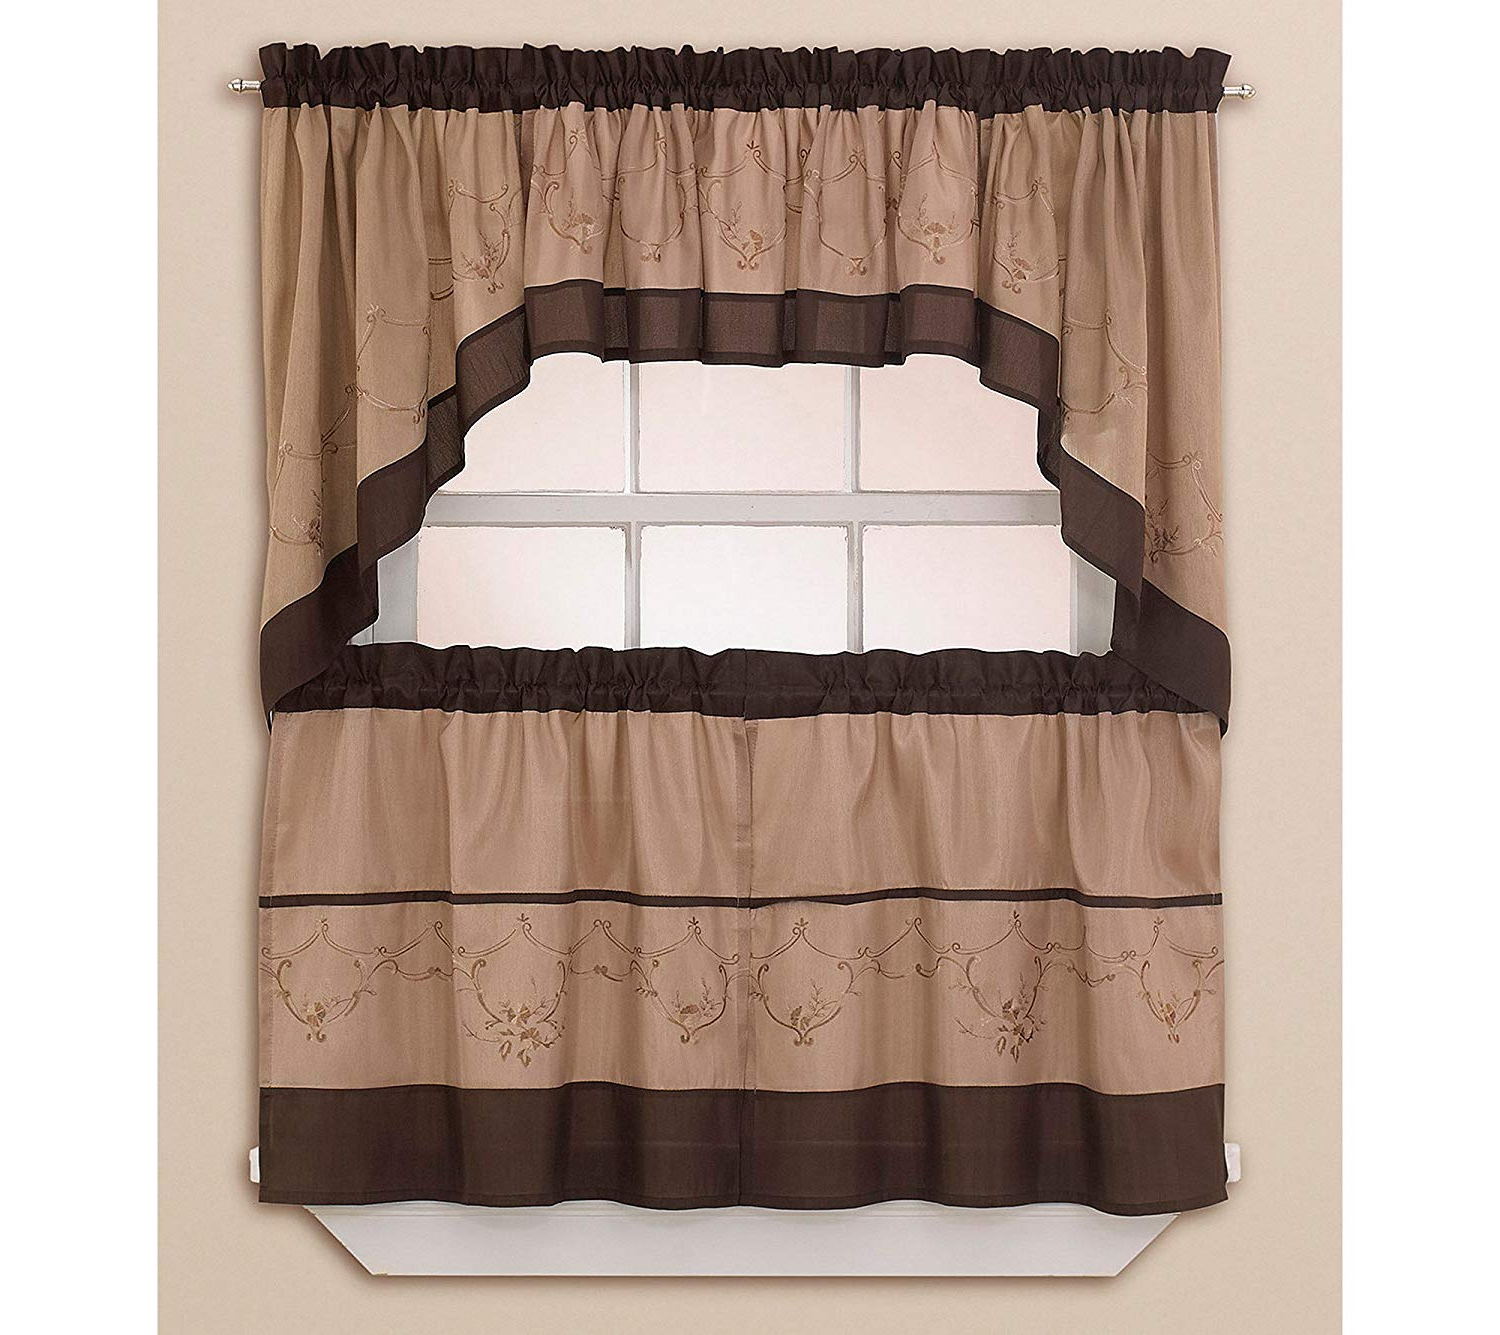 Amazon: Grace Tailored Tier Curtain Panel, Valance Chf With Regard To 2021 Tailored Valance And Tier Curtains (View 8 of 20)